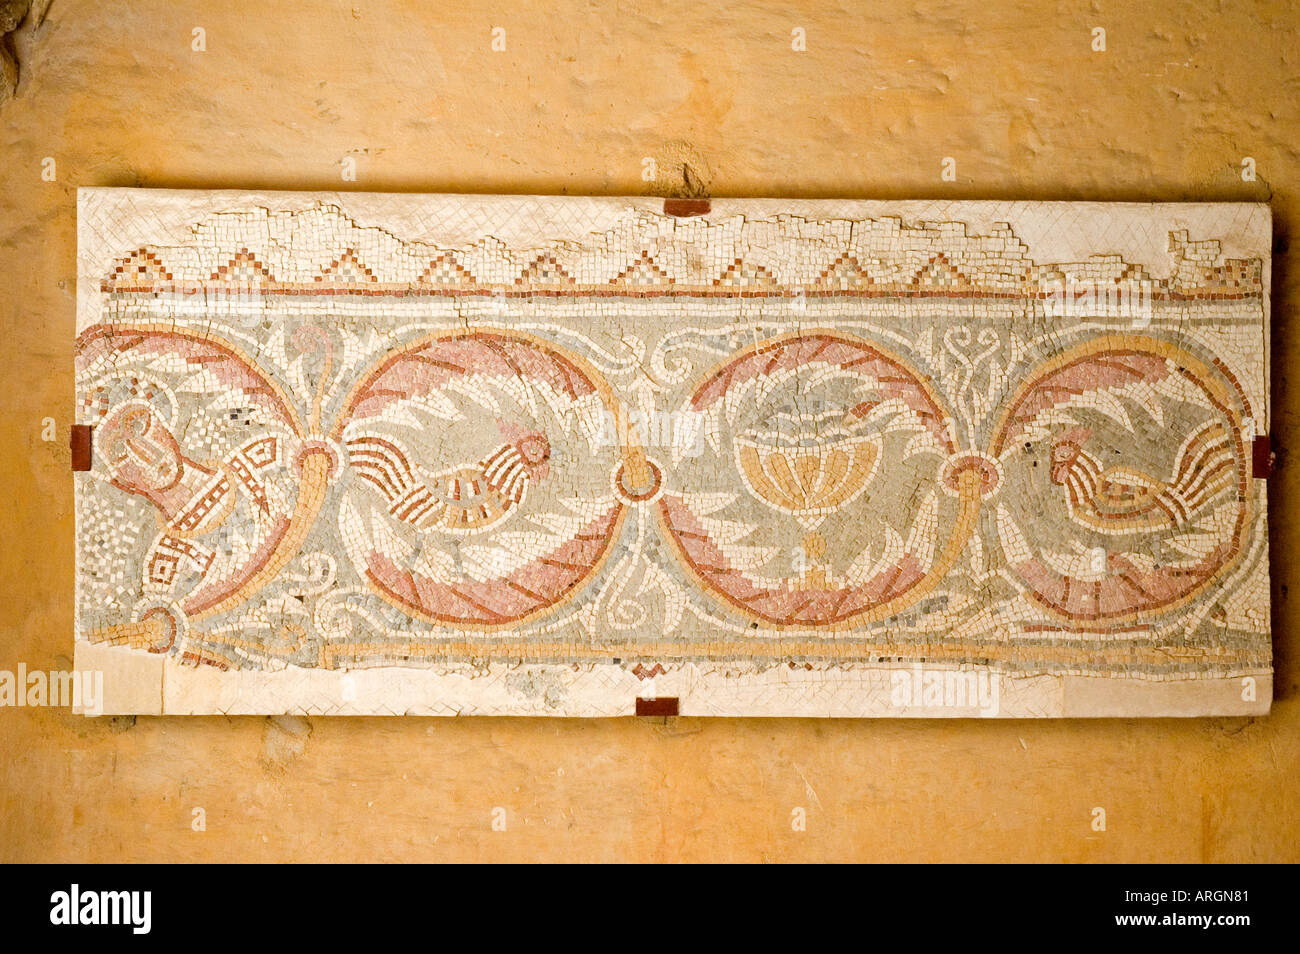 Mosaic fragments in the Church of the Virgin Mary, Madaba, Hashemite Kingdom of Jordan, Middle East. DSC_5342 - Stock Image